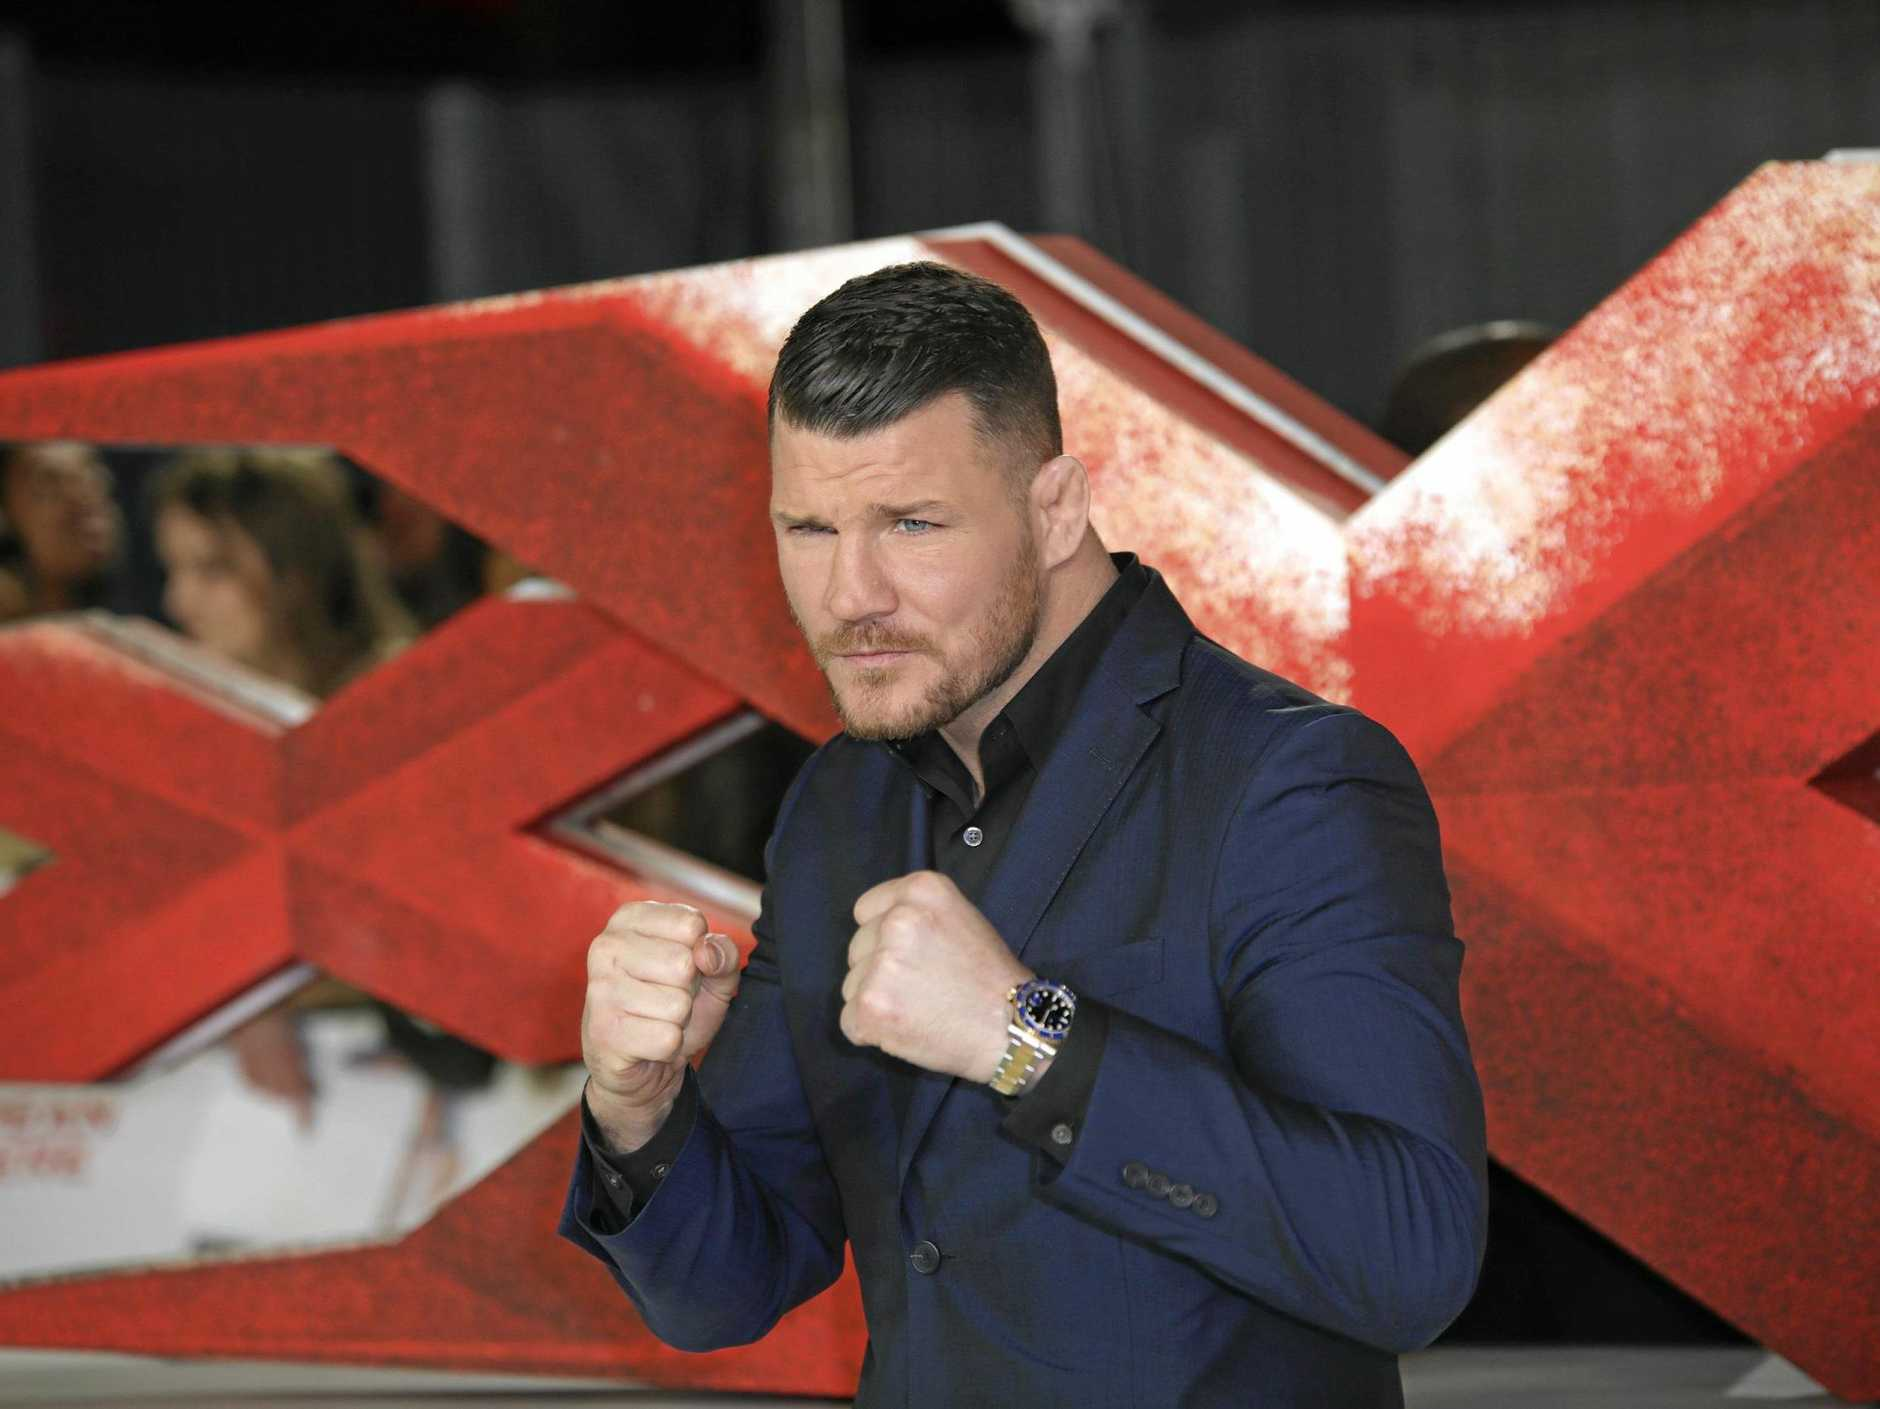 UFC fighter Michael Bisping is contemplating retirement.